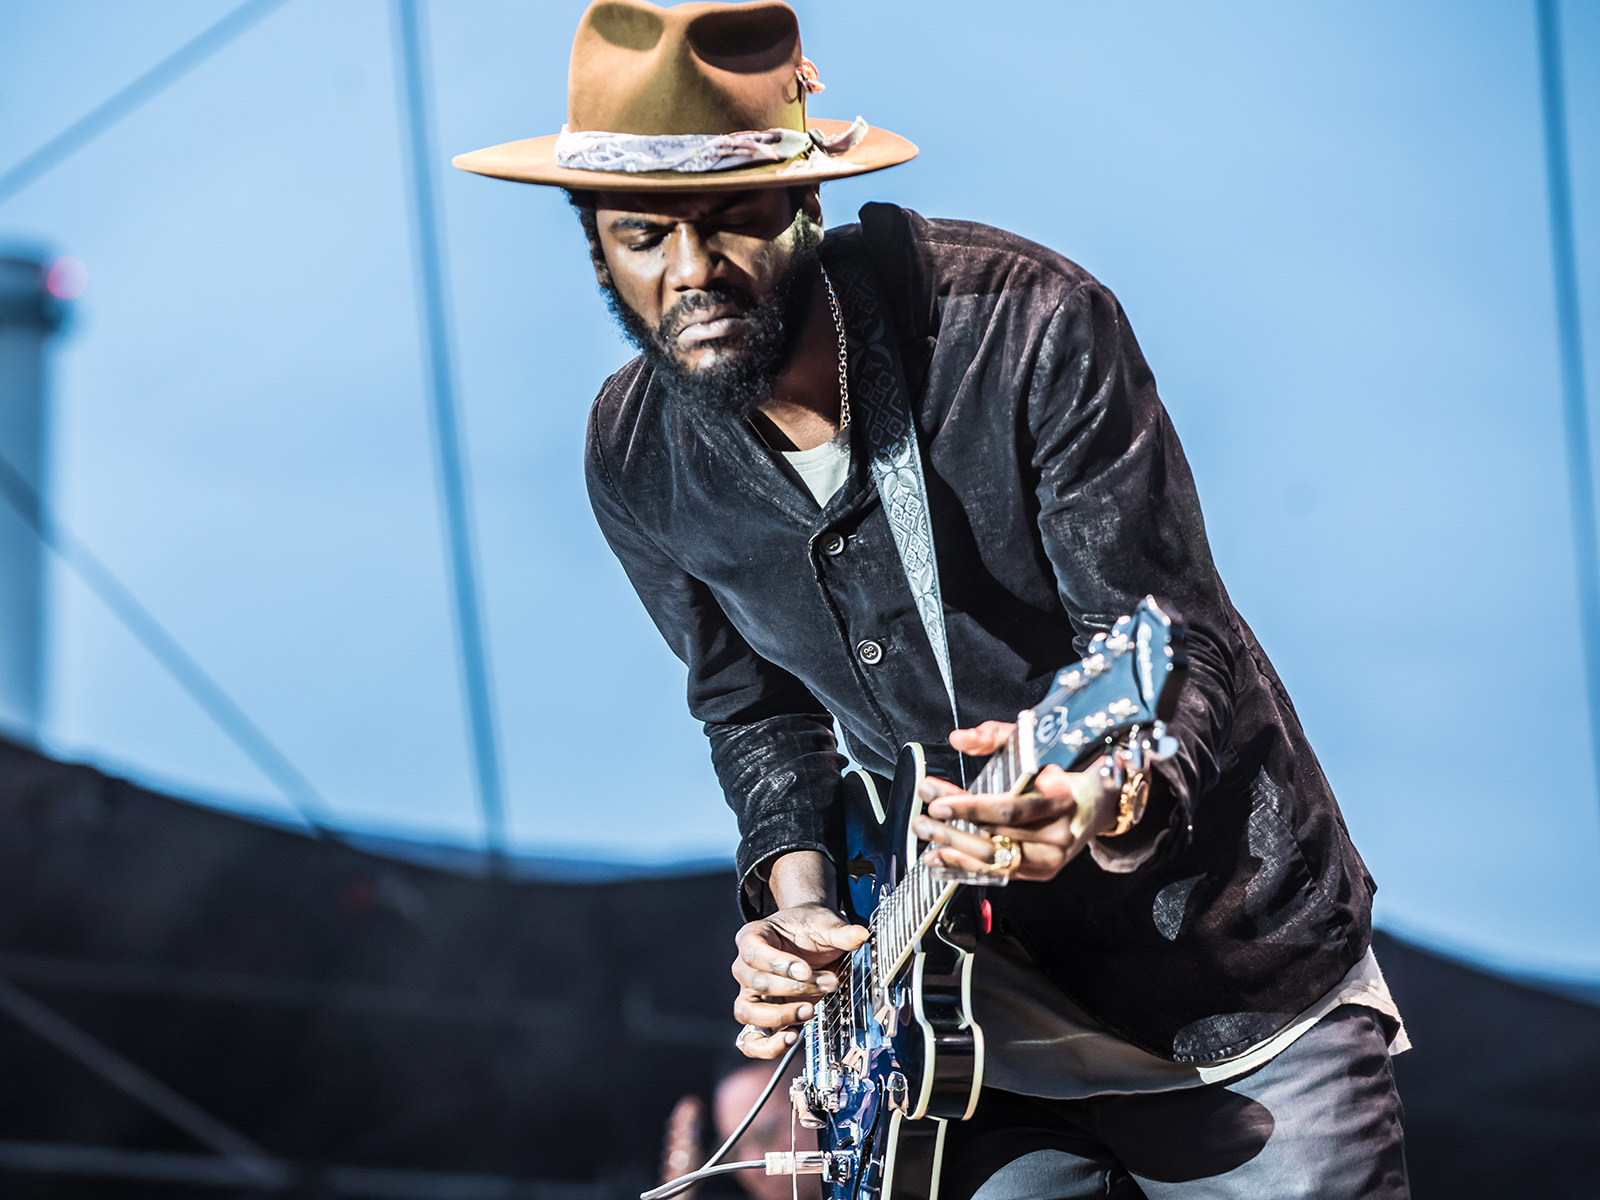 Gary Clark Jr. at Red Rocks Amphitheater